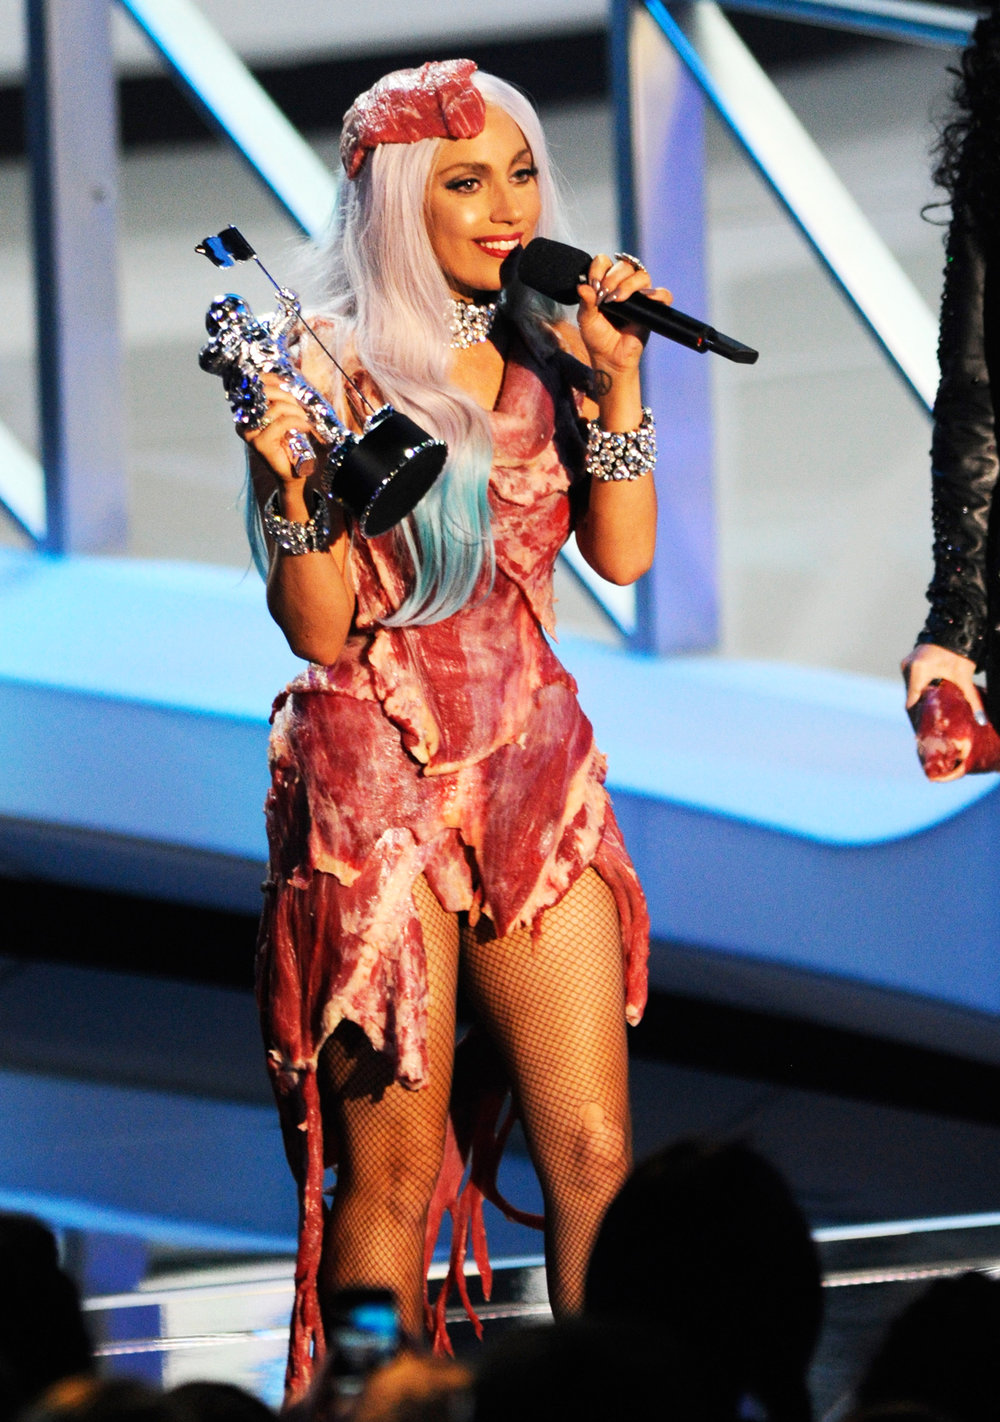 Lady Gaga accepts award from Cher on stage at the 2010 MTV Video Music Awards held at Nokia Theatre L.A. Live on Sept. 12, 2010 in Los Angeles.